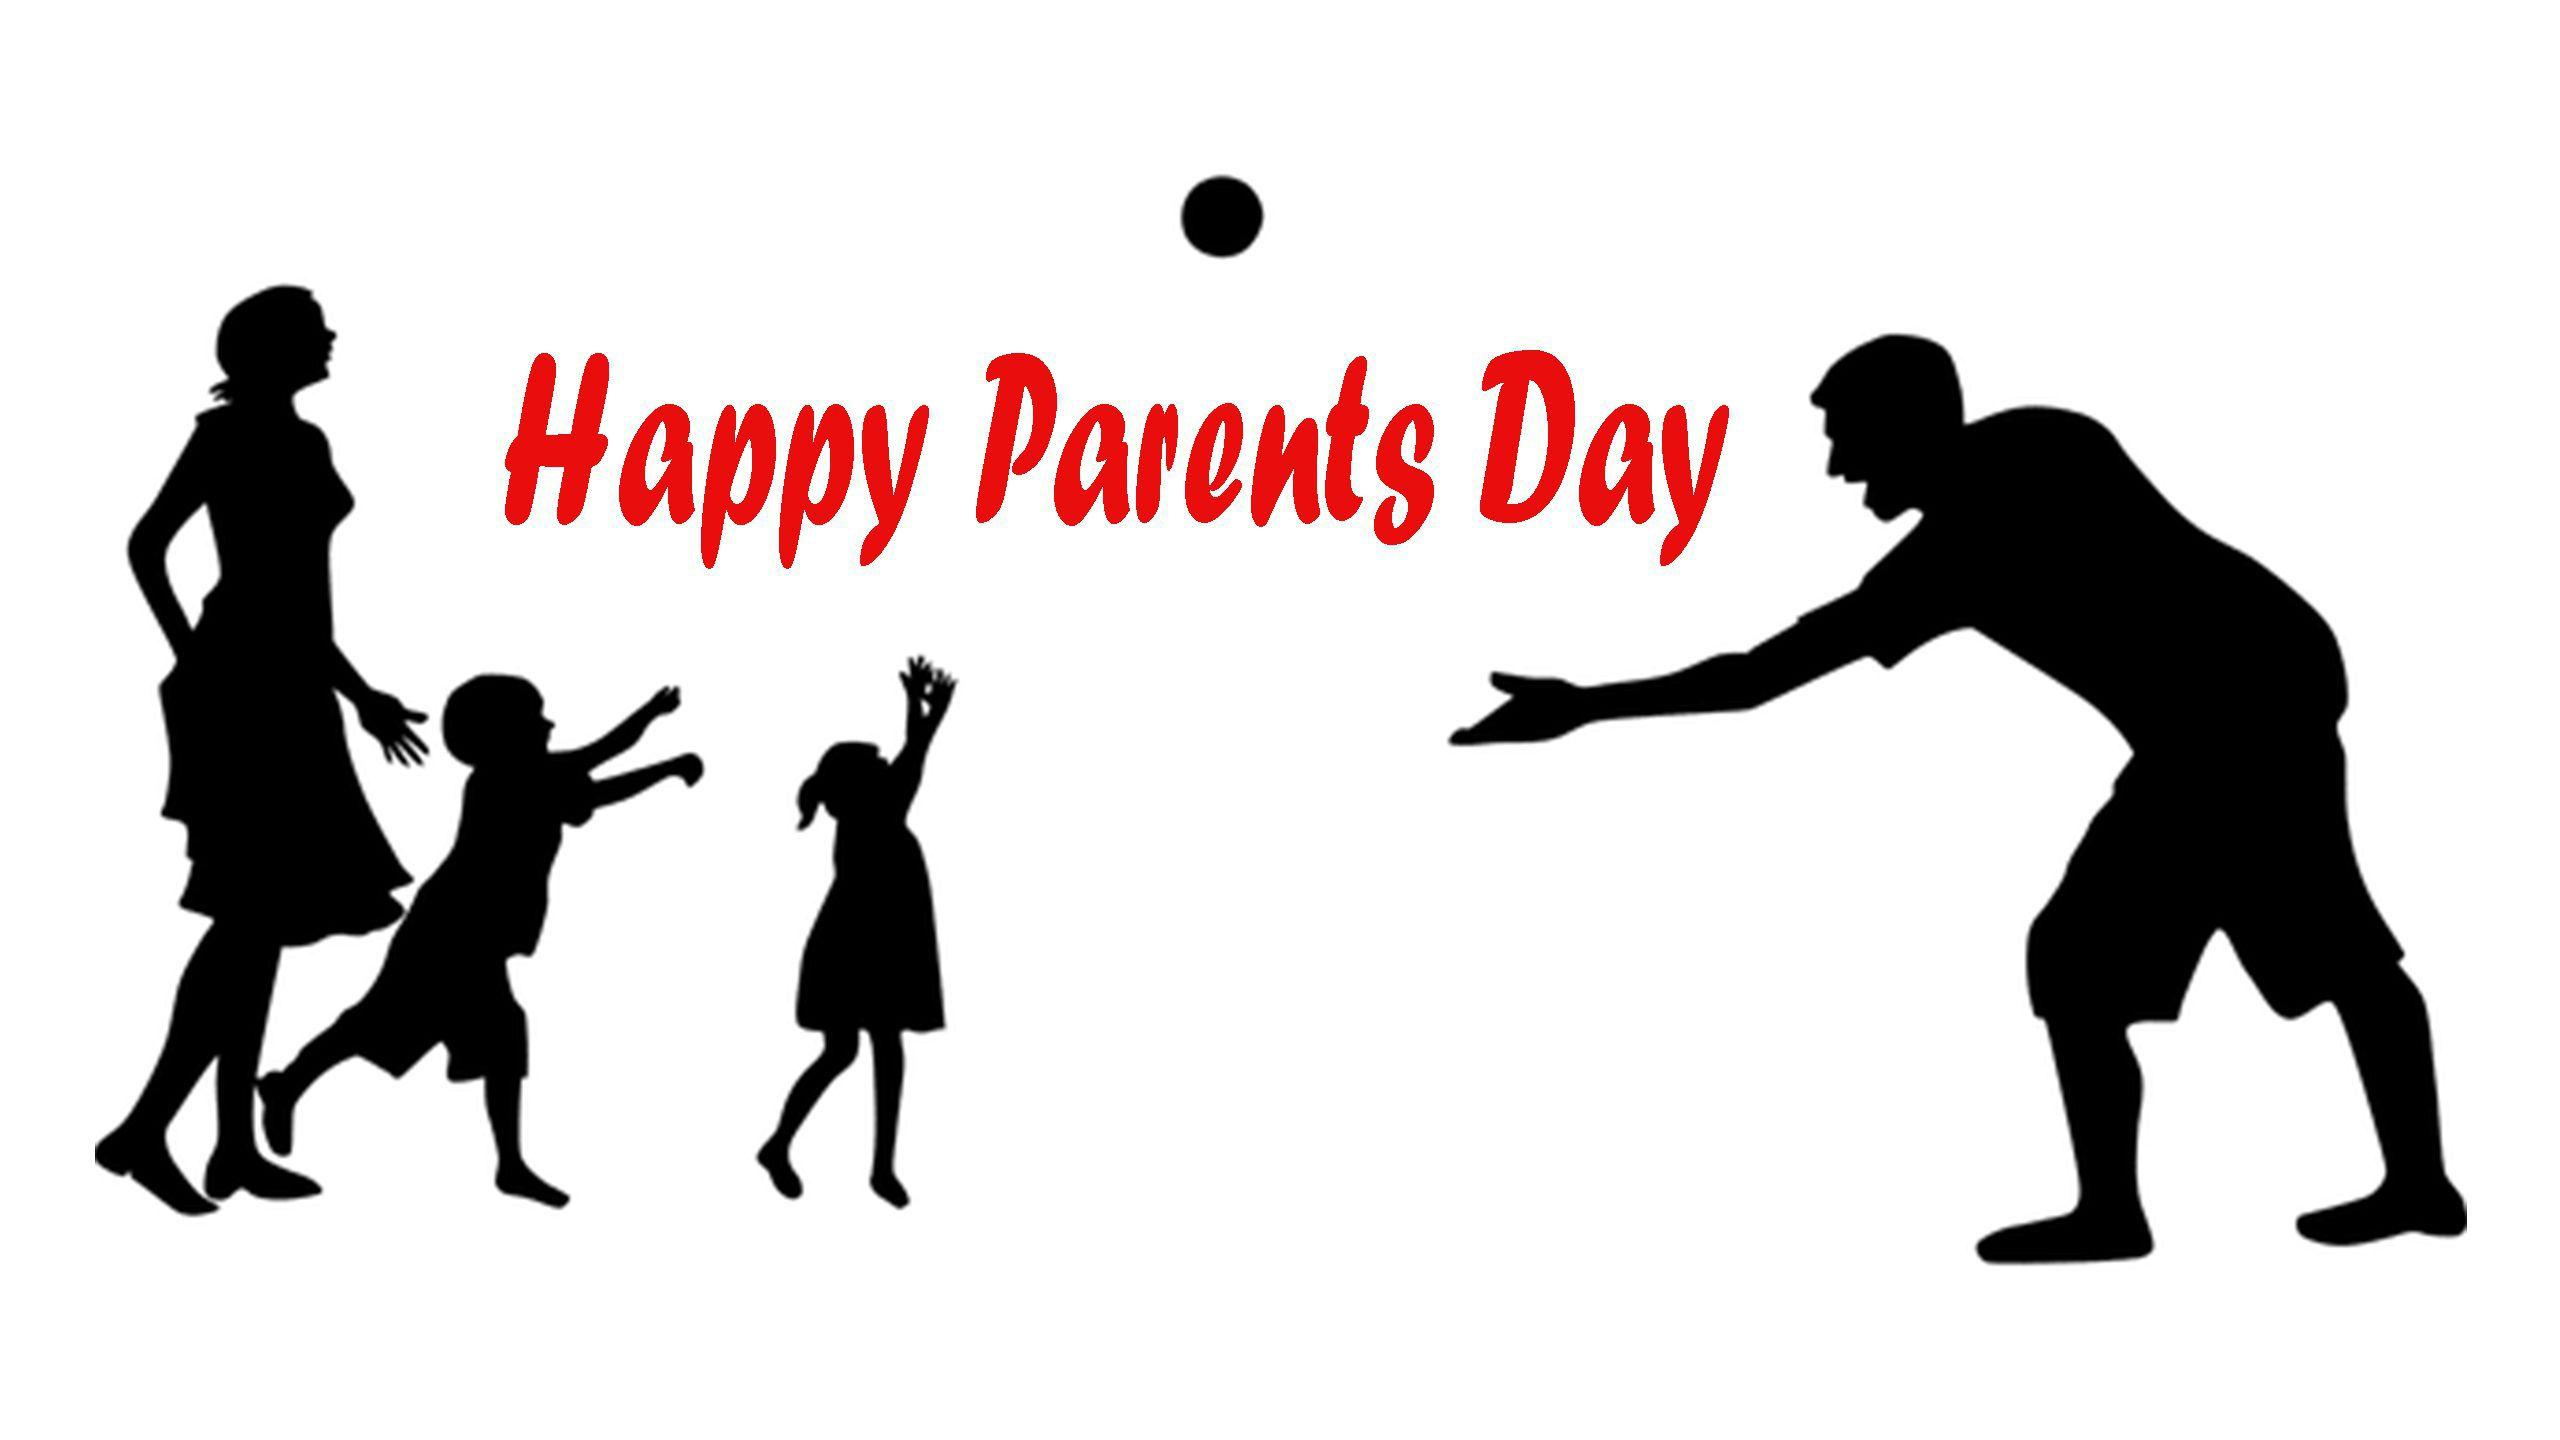 Happy Parents Day Wallpaper Images